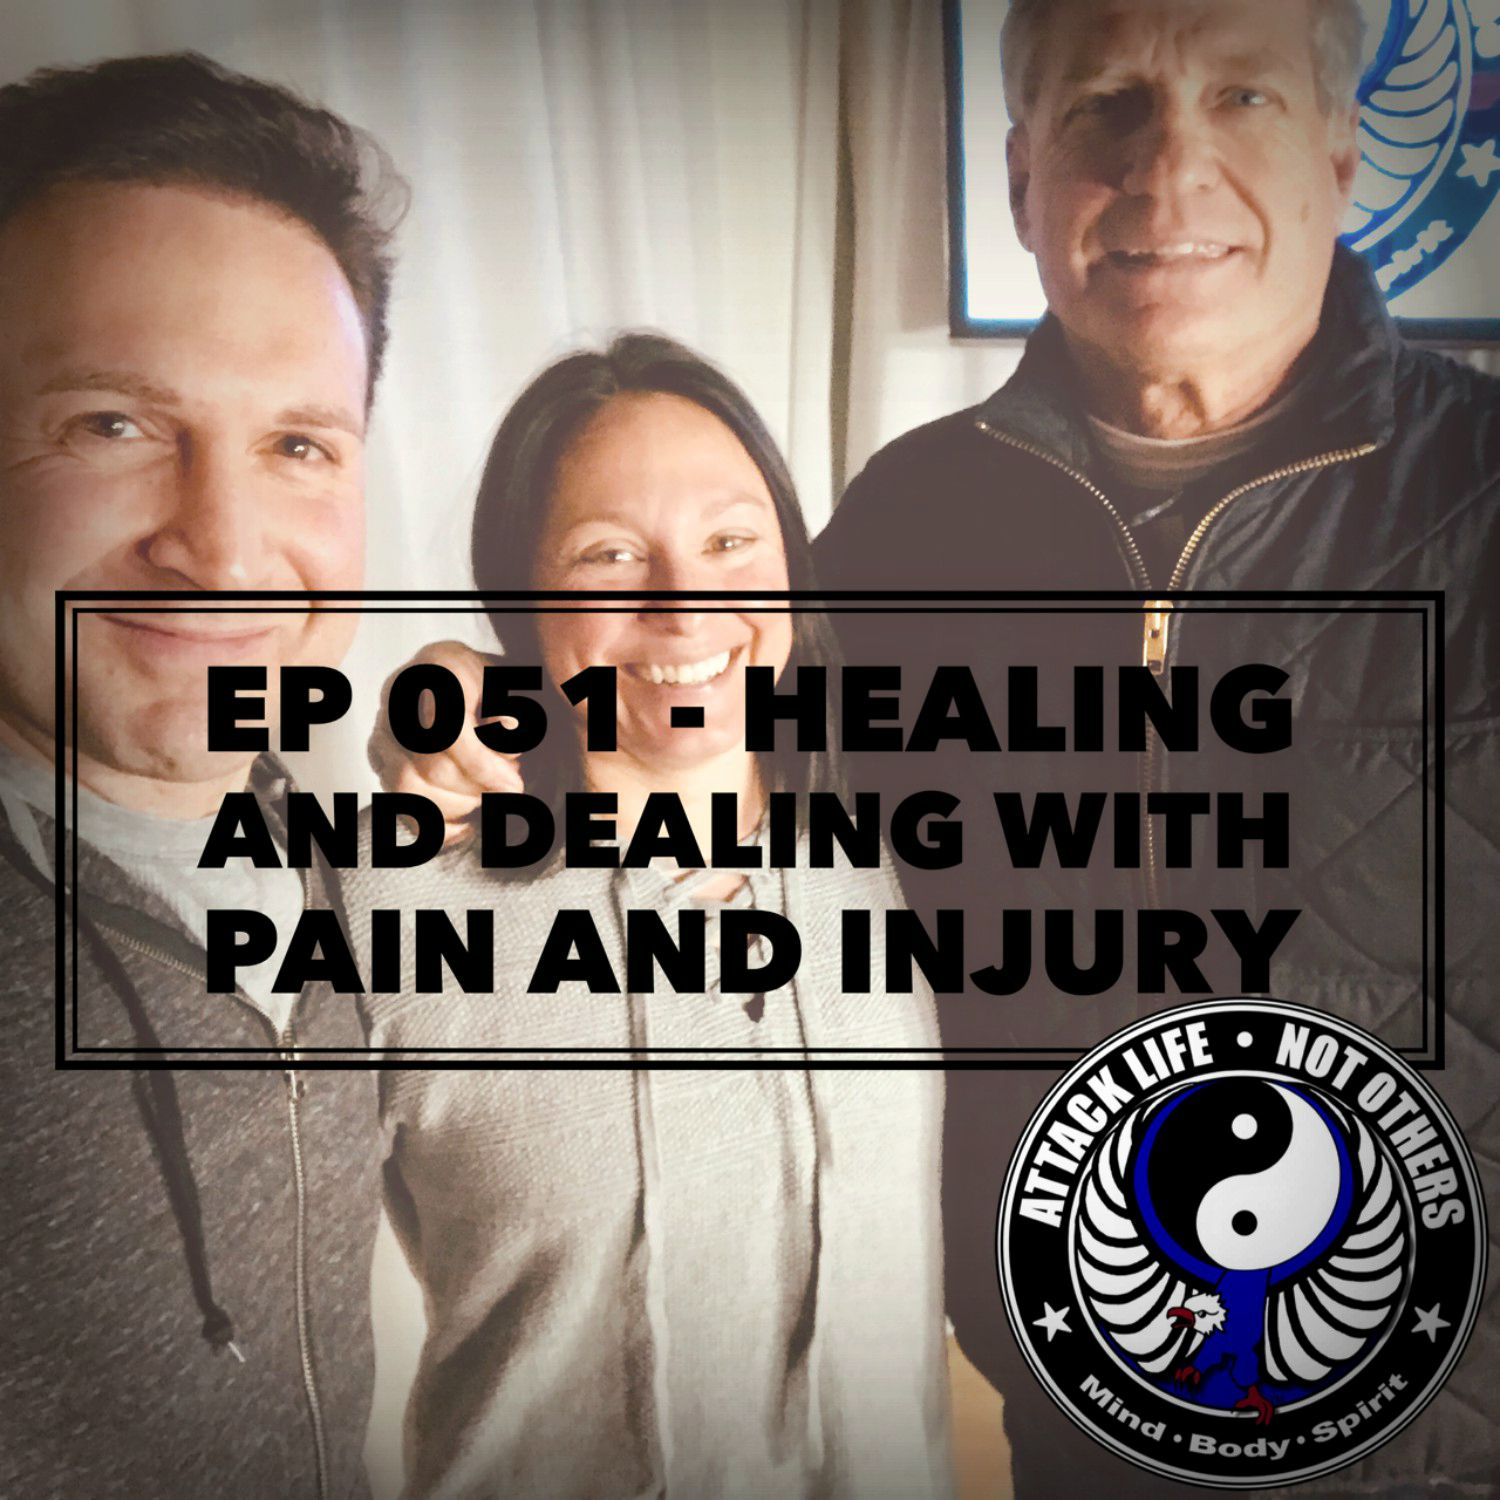 Artwork for Ep 051 - Healing and Dealing with Pain and Injury